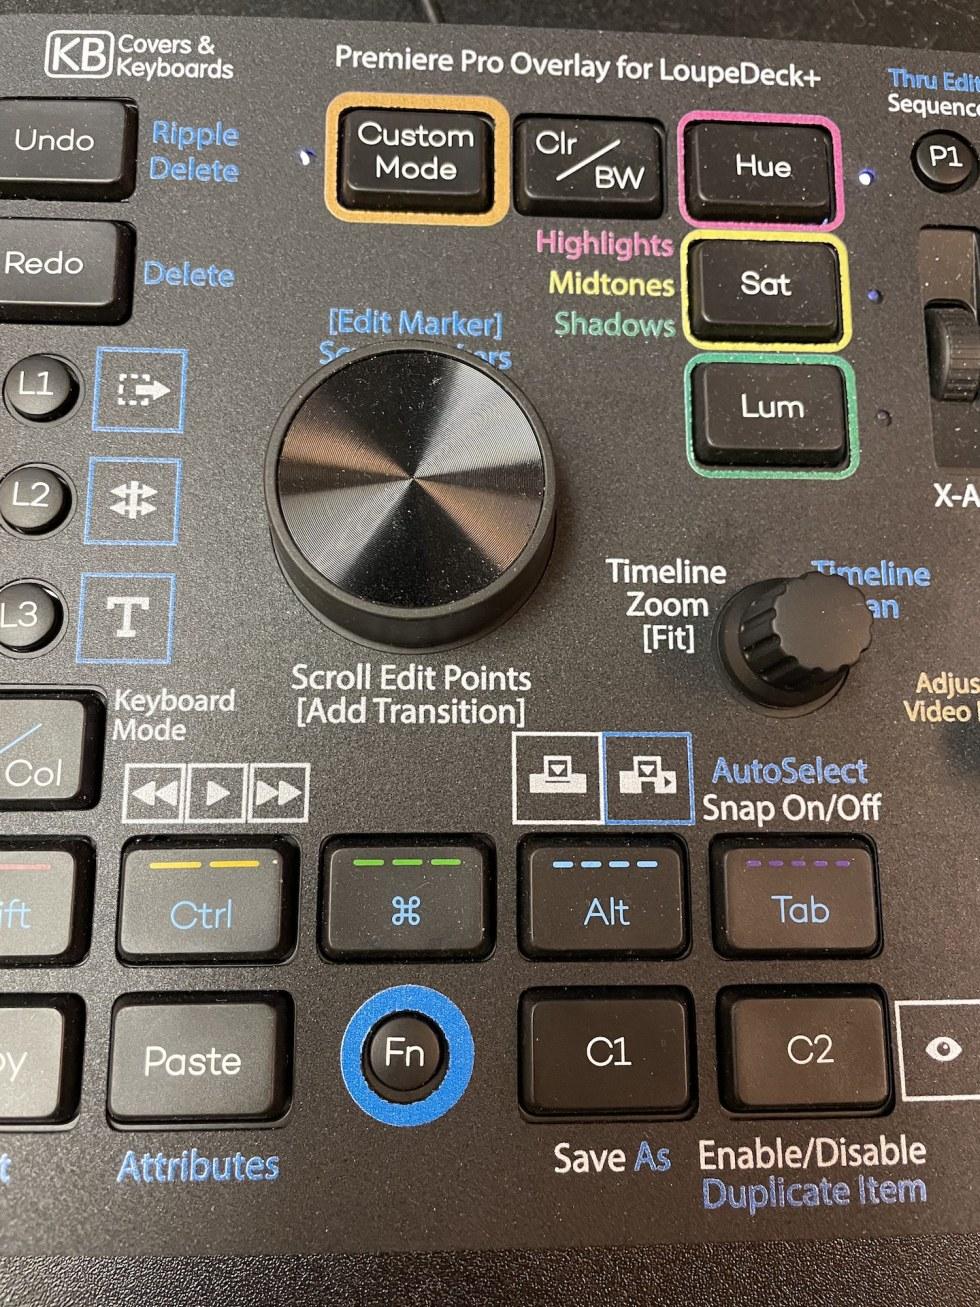 Custom video editing overlays for the Loupedeck+ control surface 3